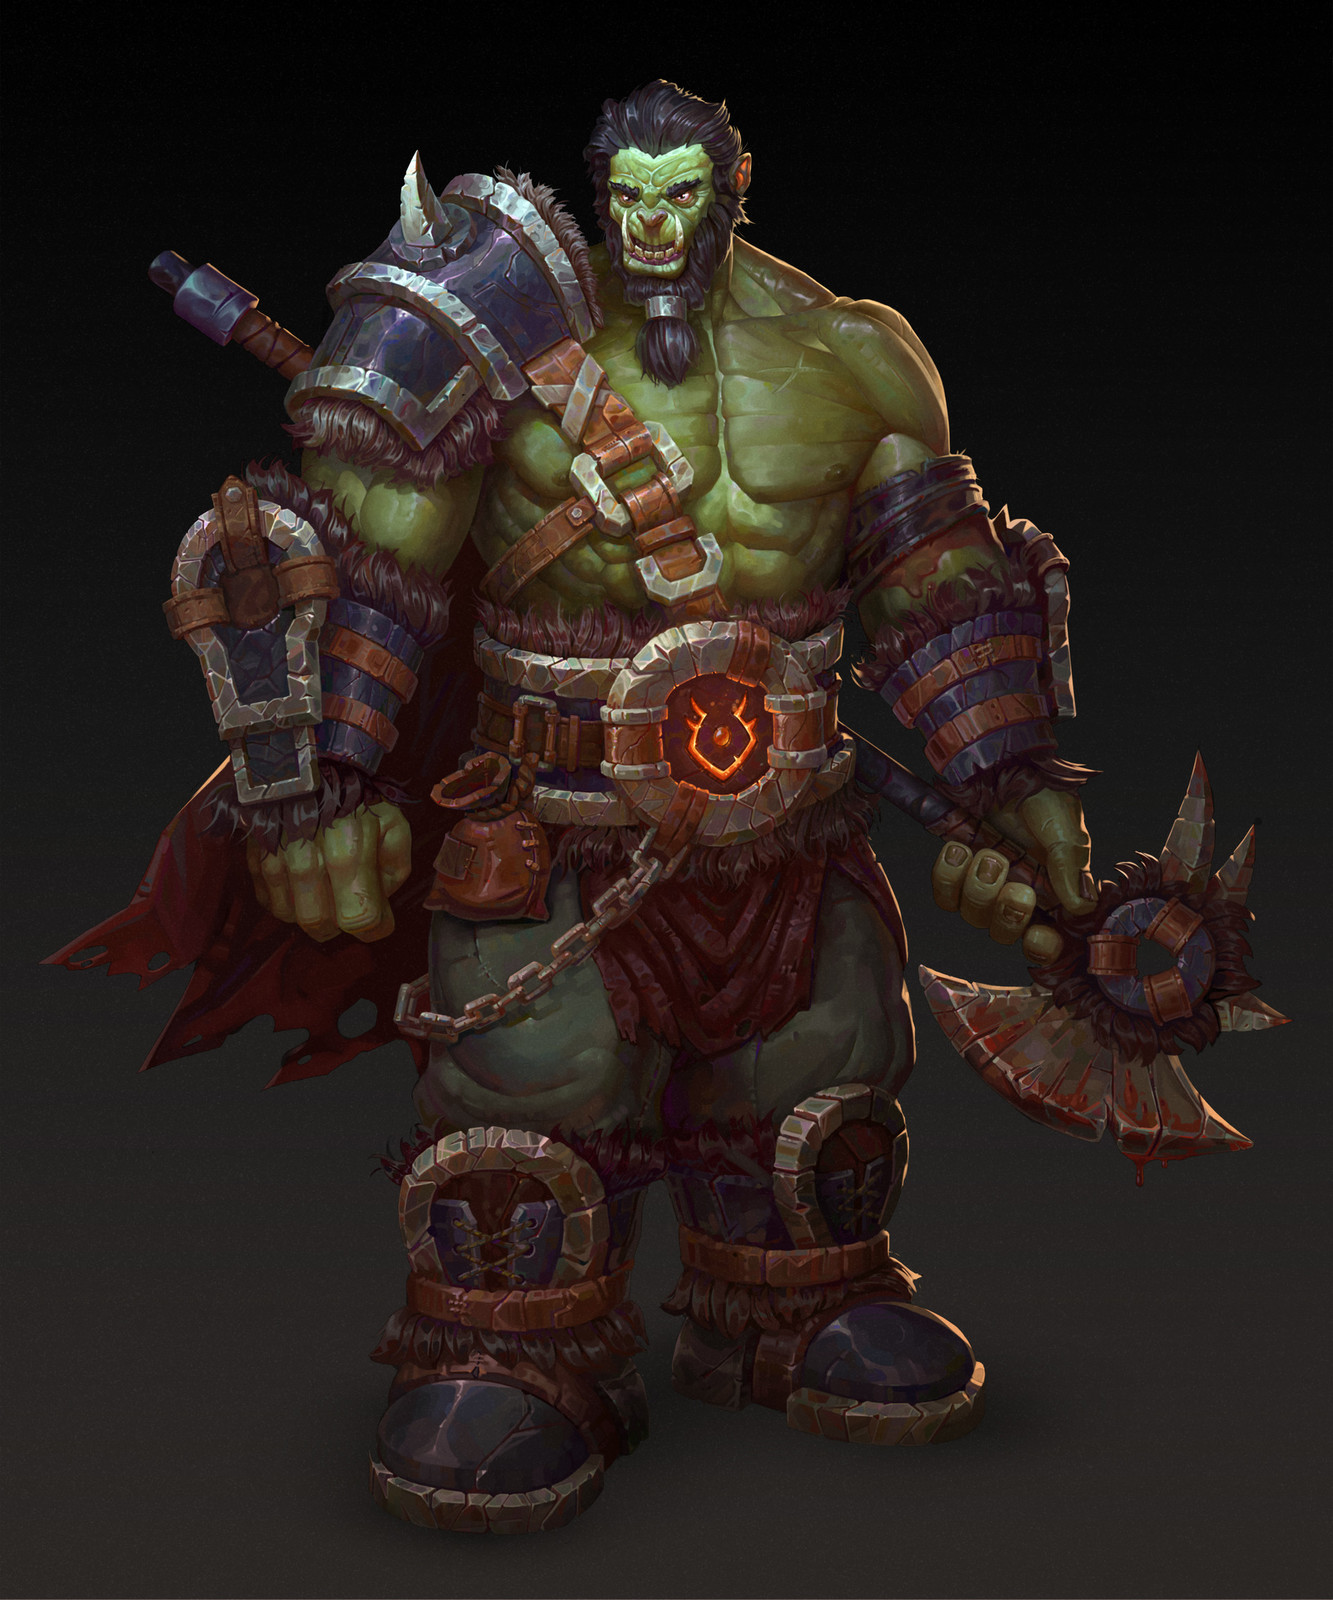 Orc character artwork